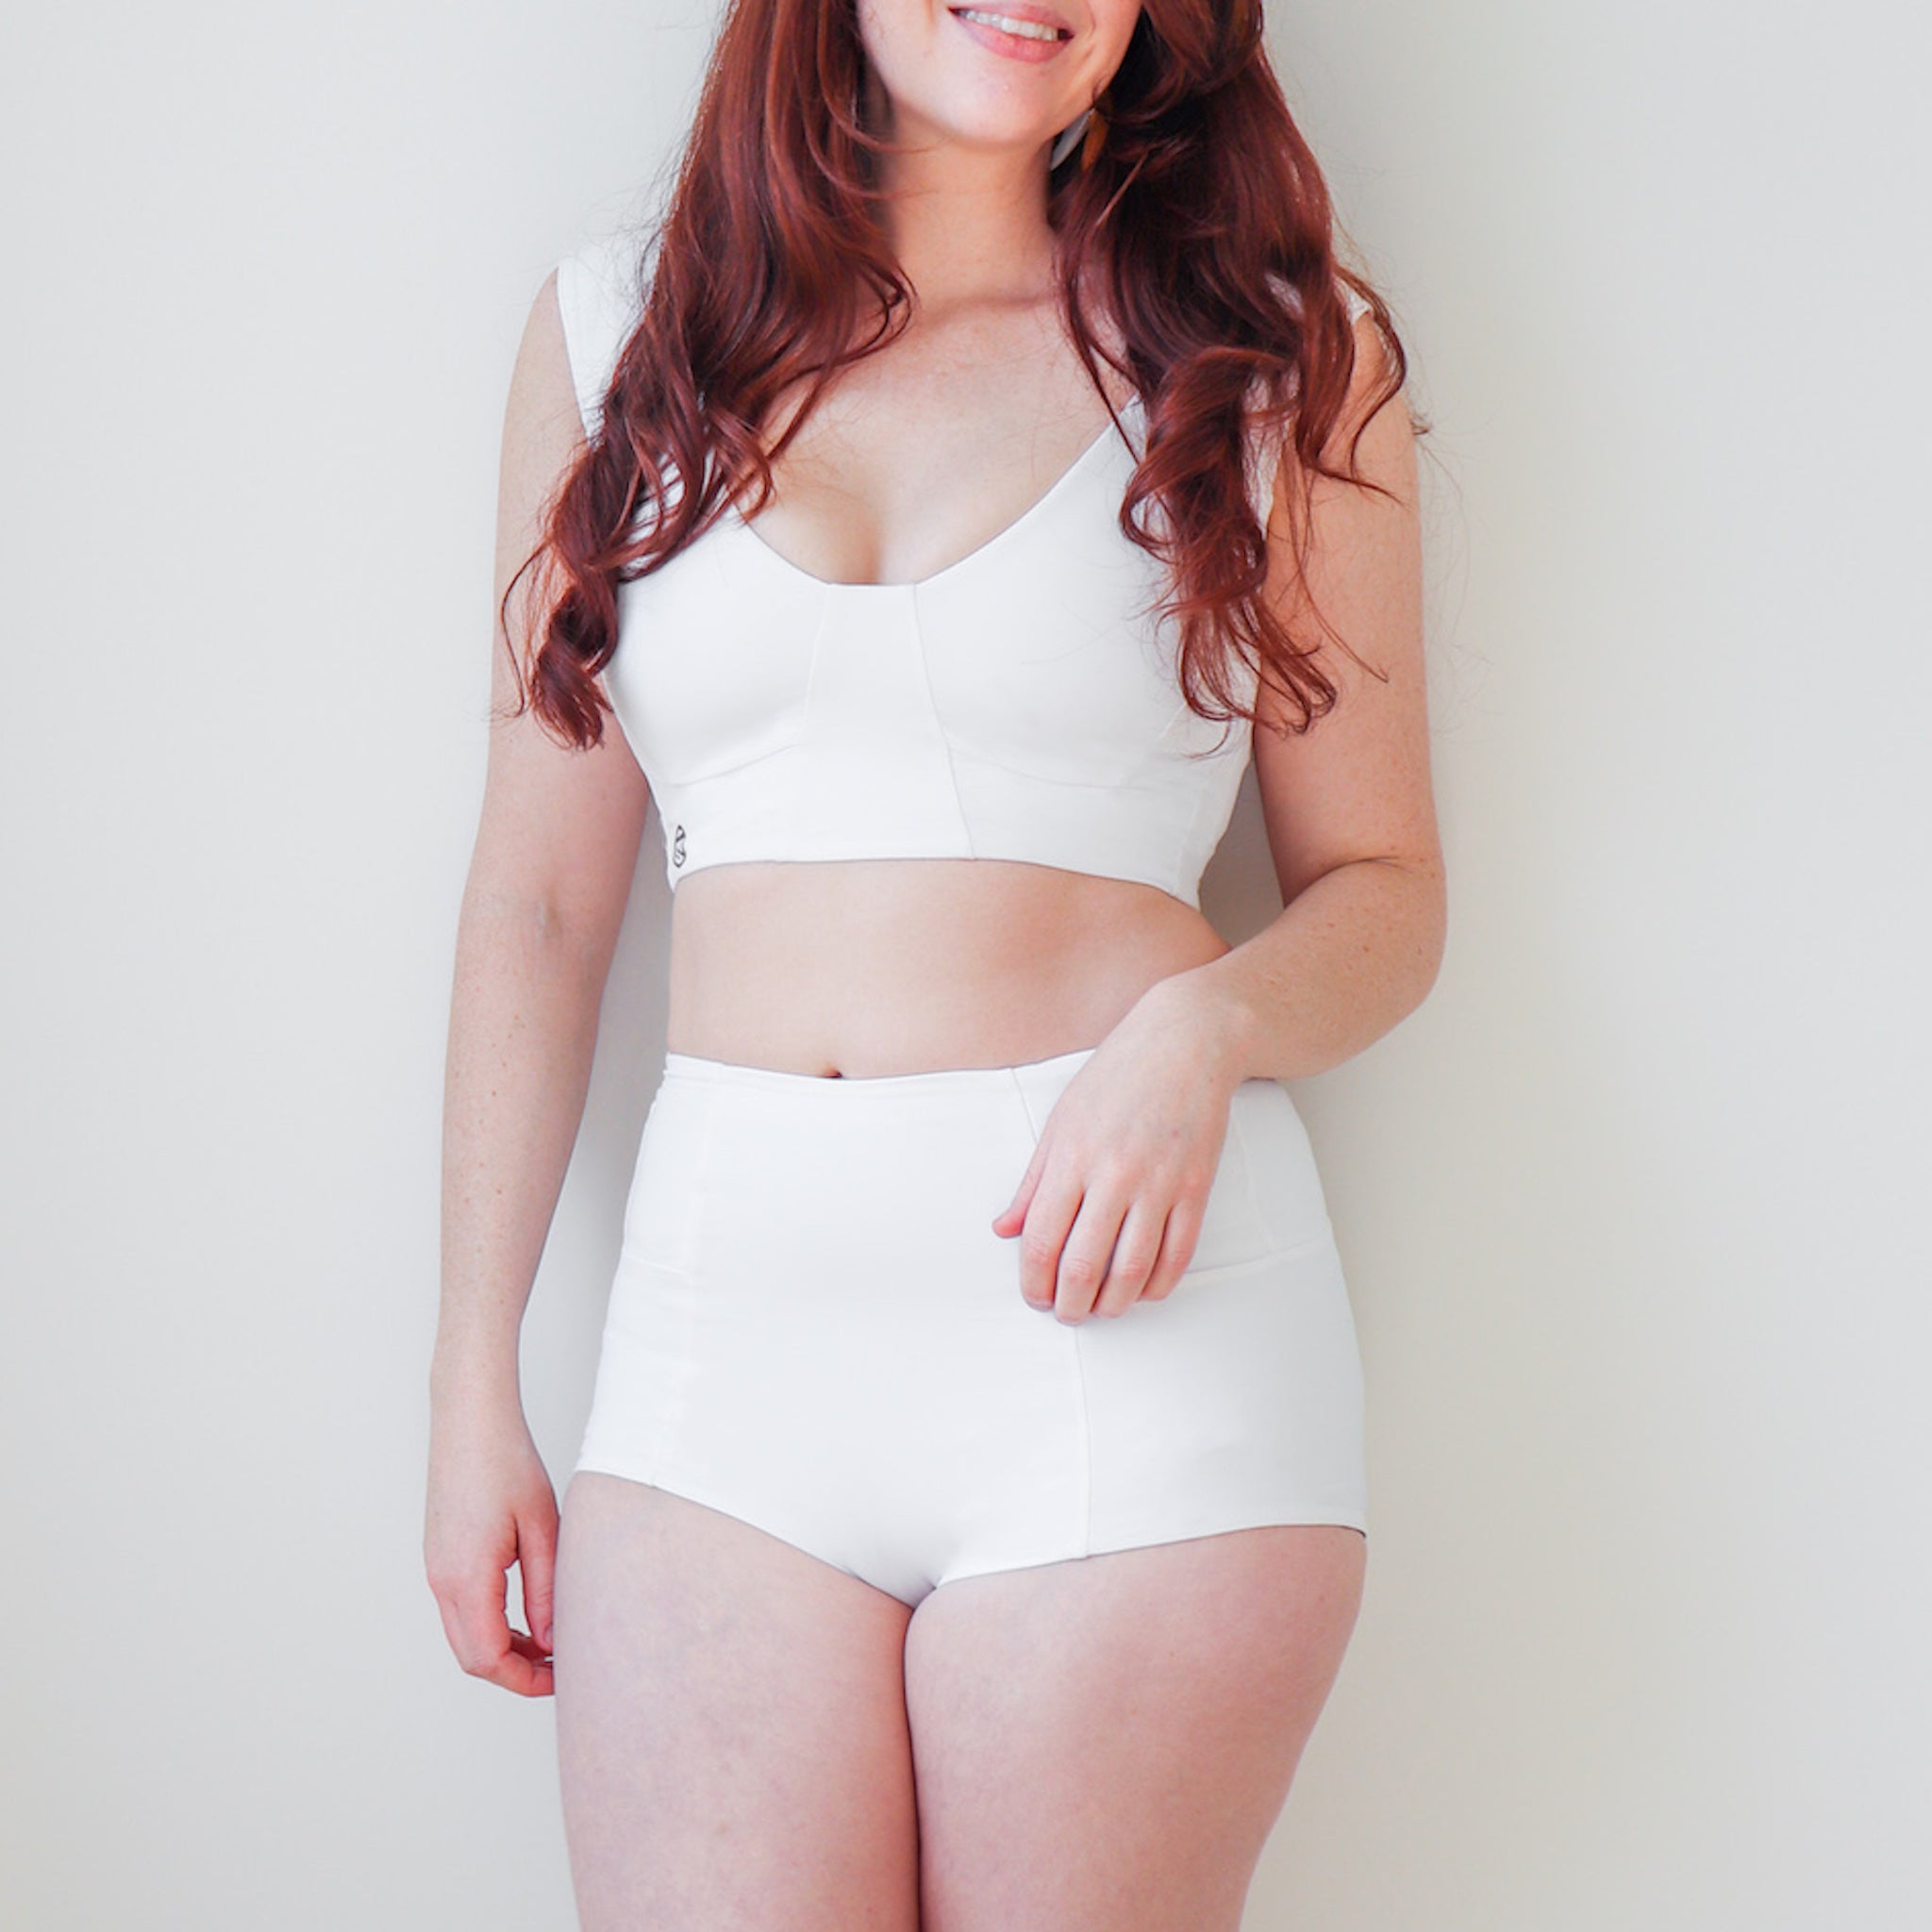 Hi-rise Ally Underwear creates a smooth silhouette and cradles lower back